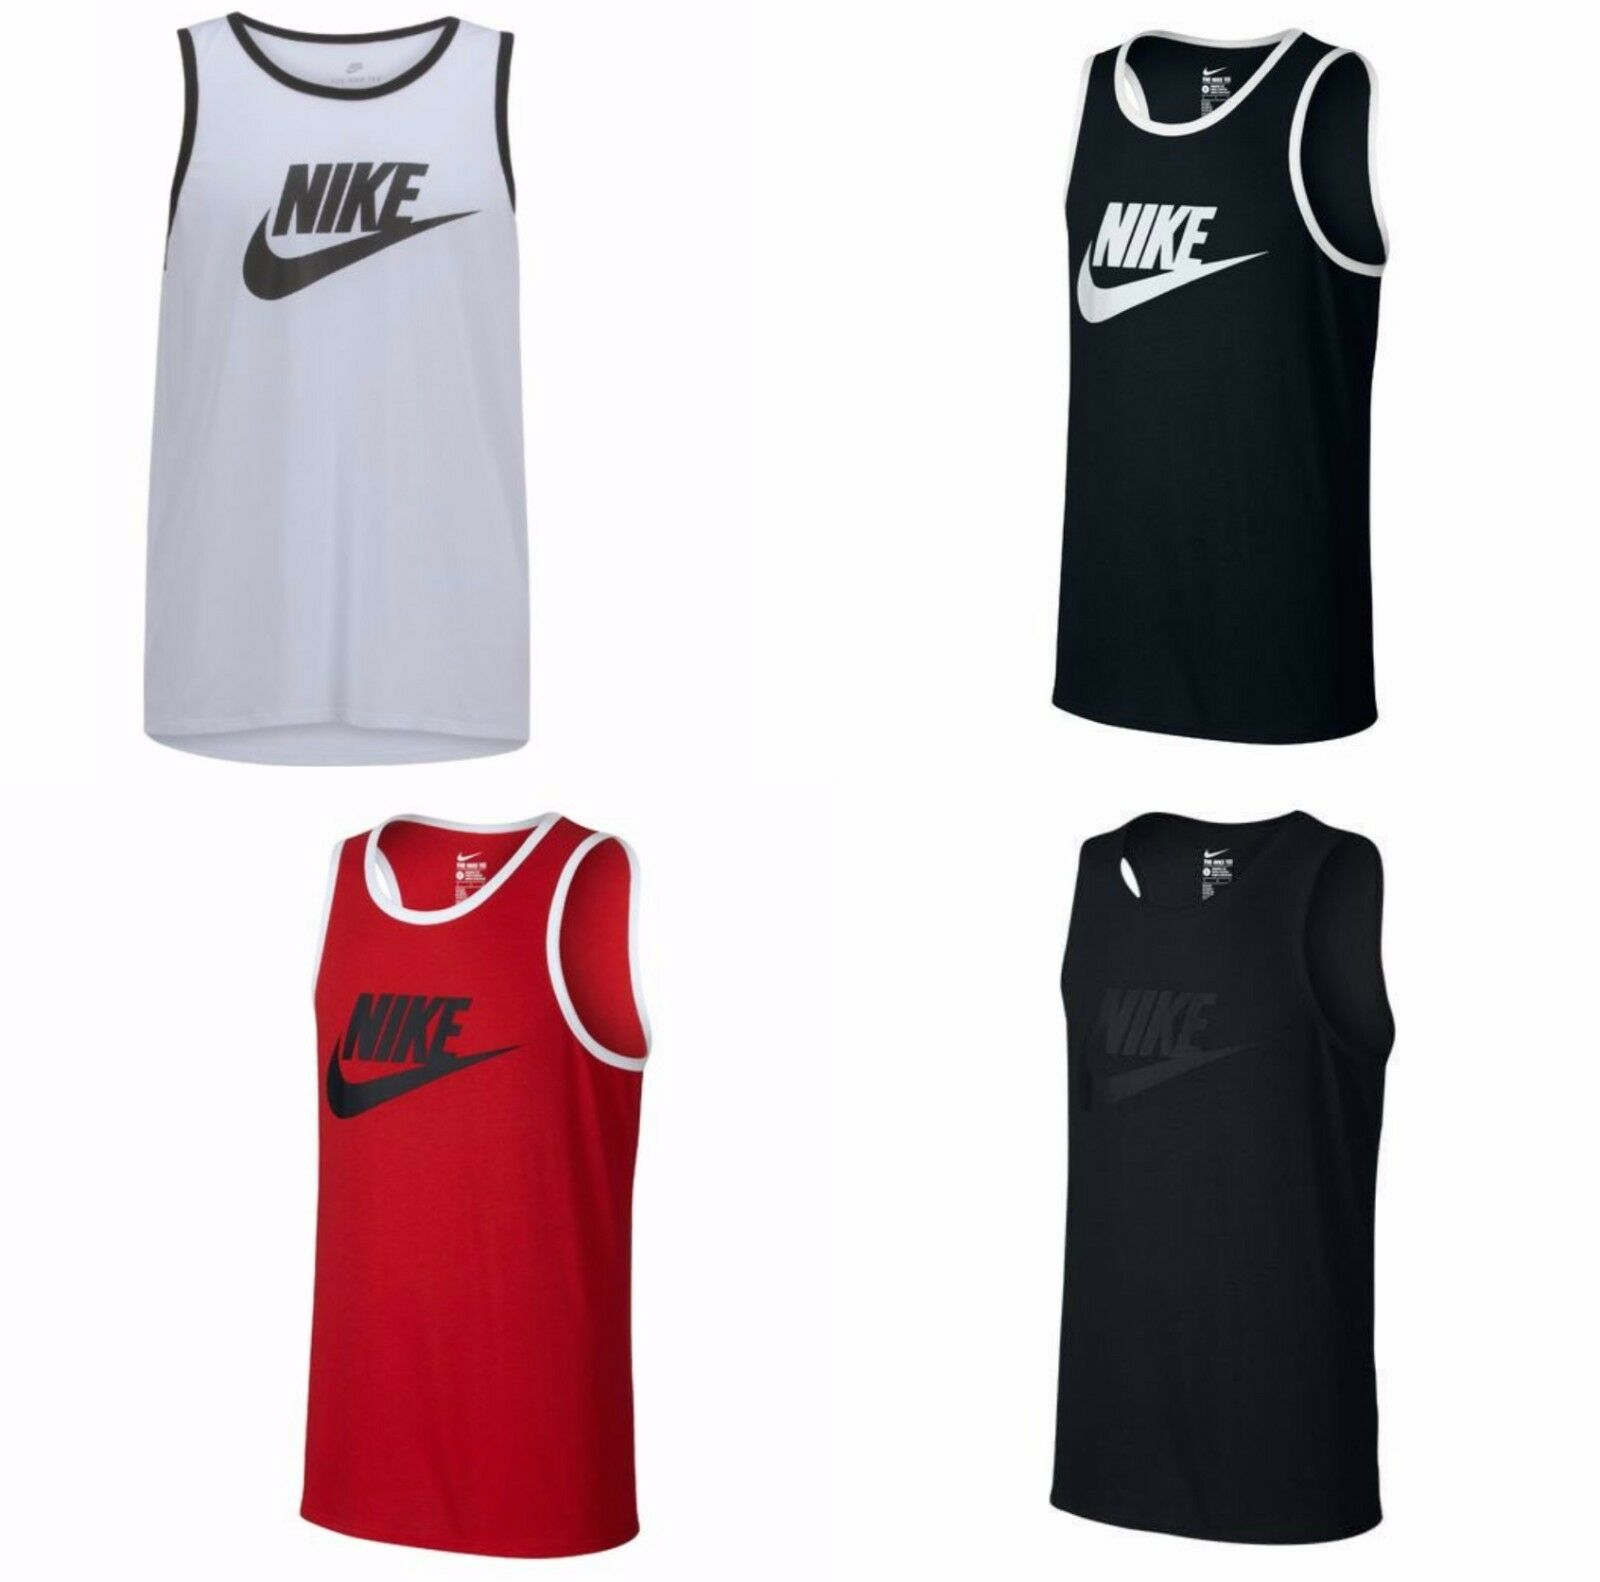 New Nike Mens Ace Logo Tank Top Tri-blend , gym,  black, red, white gray tanktop